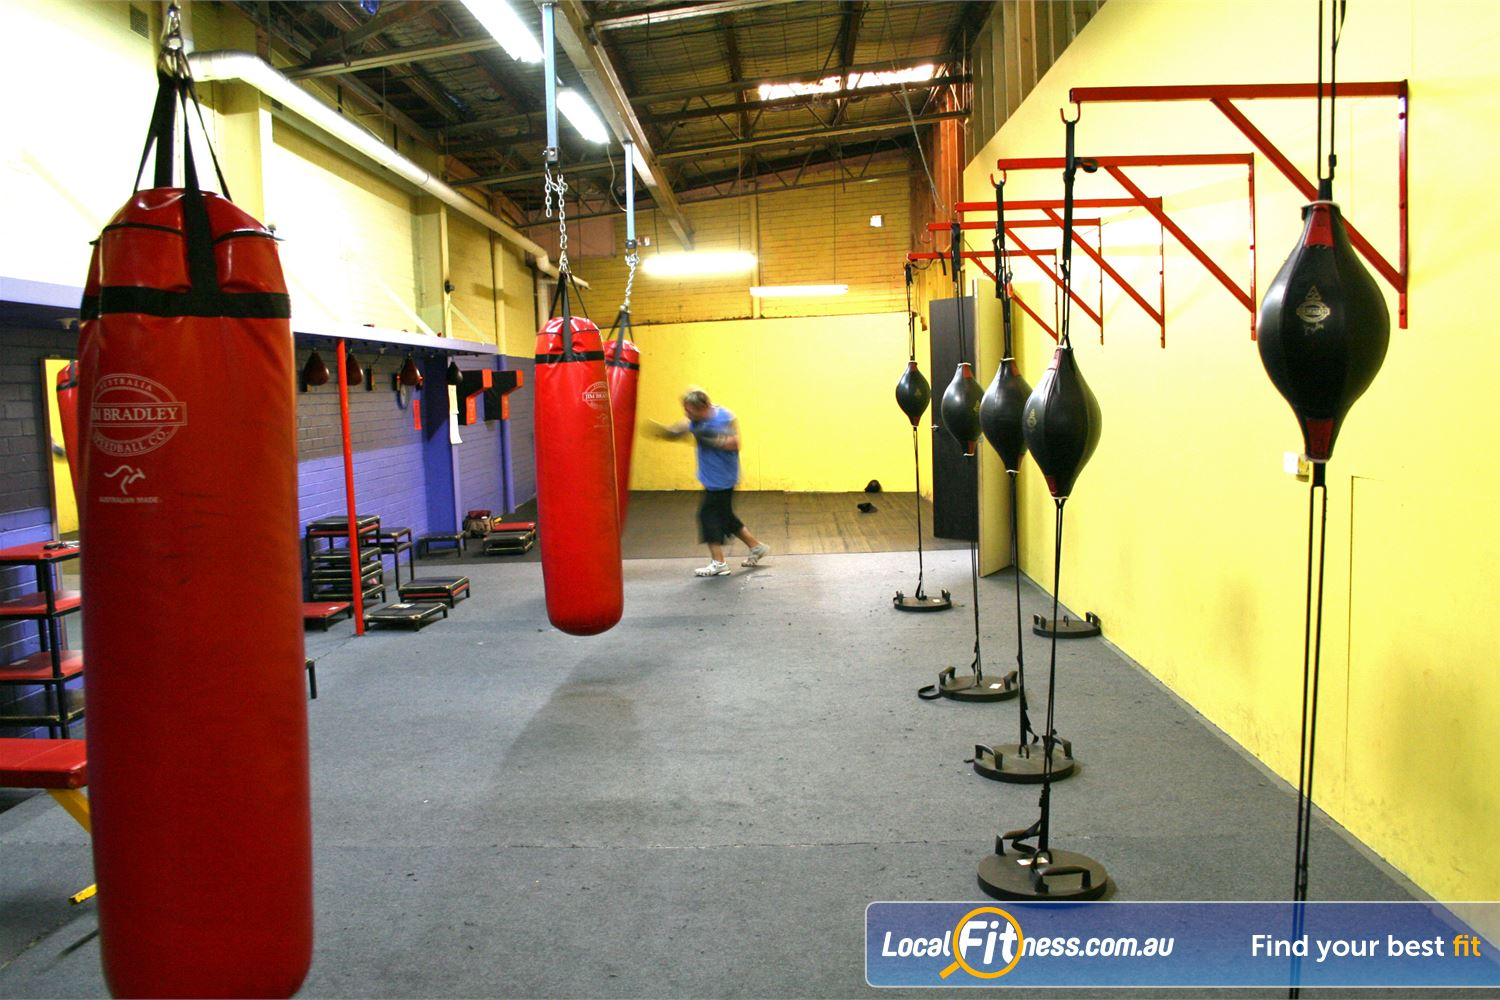 FITafex Gymnasium Essendon The fully equipped Essendon boxing studio.